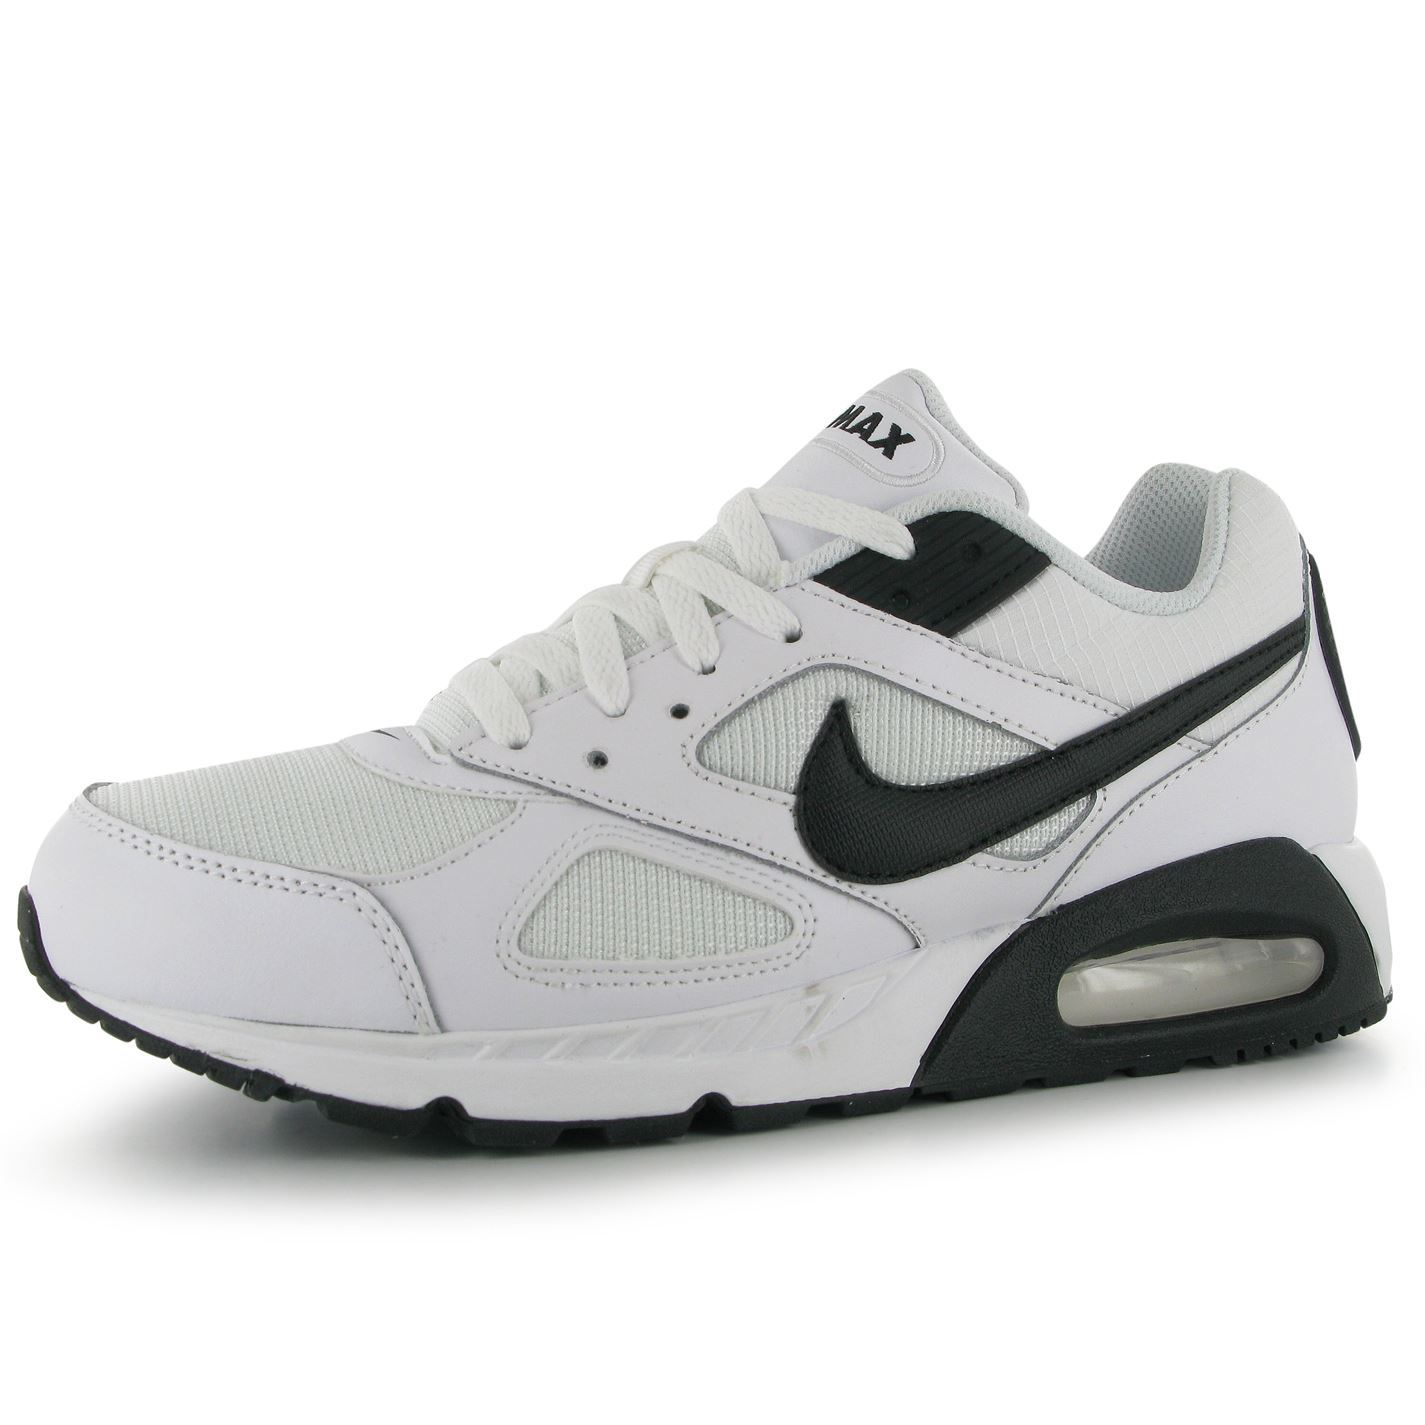 nike air max ivo trainers mens white black sneakers shoes. Black Bedroom Furniture Sets. Home Design Ideas